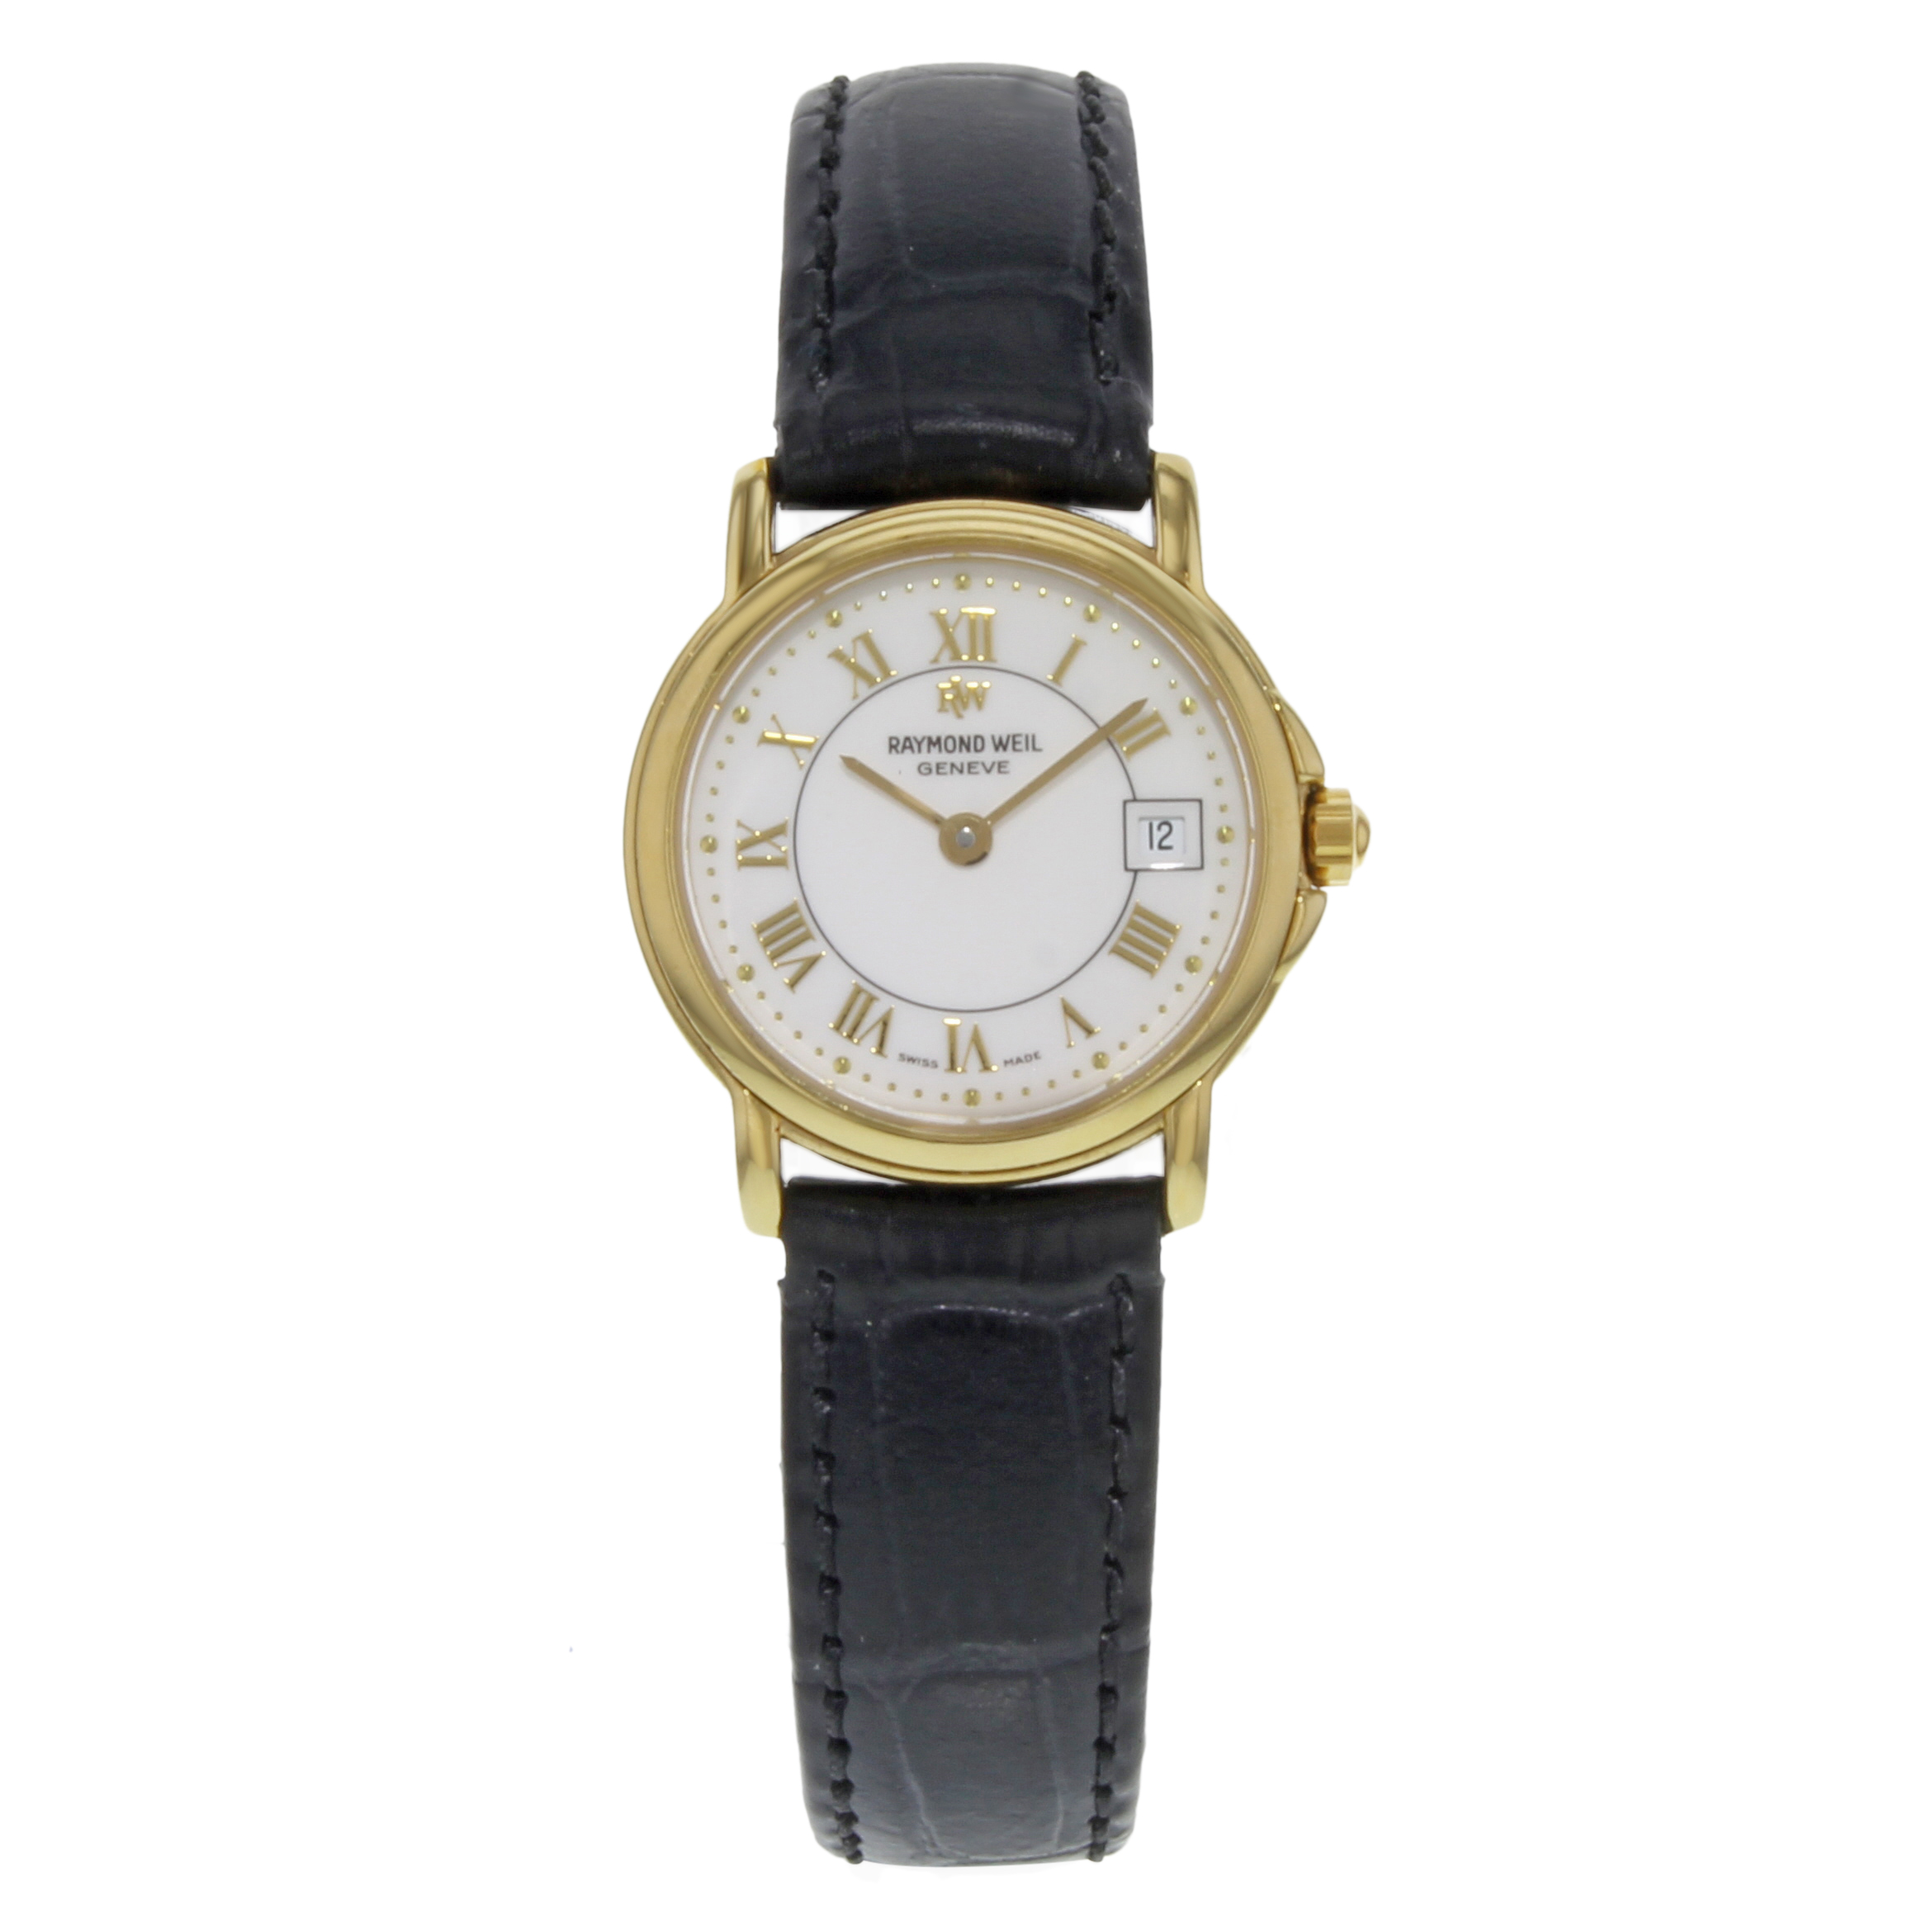 weil ladies watches raymond model jasmine zm watch